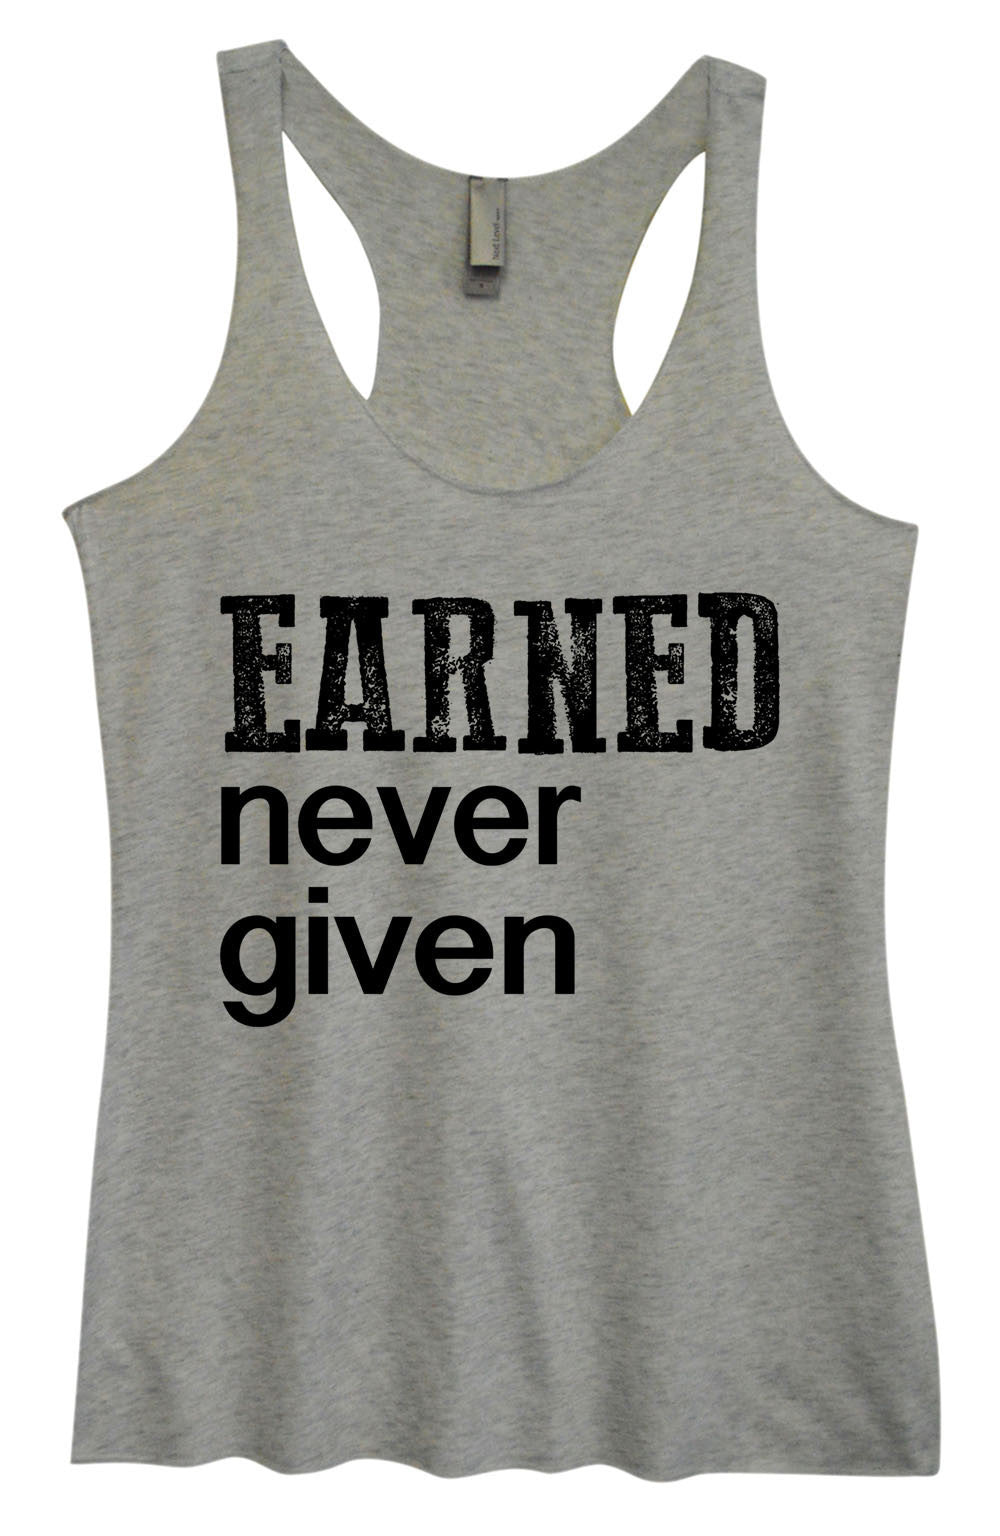 Womens Fashion Triblend Tank Top - Earned Never Given - Tri-766 - Funny Shirts Tank Tops Burnouts and Triblends  - 3